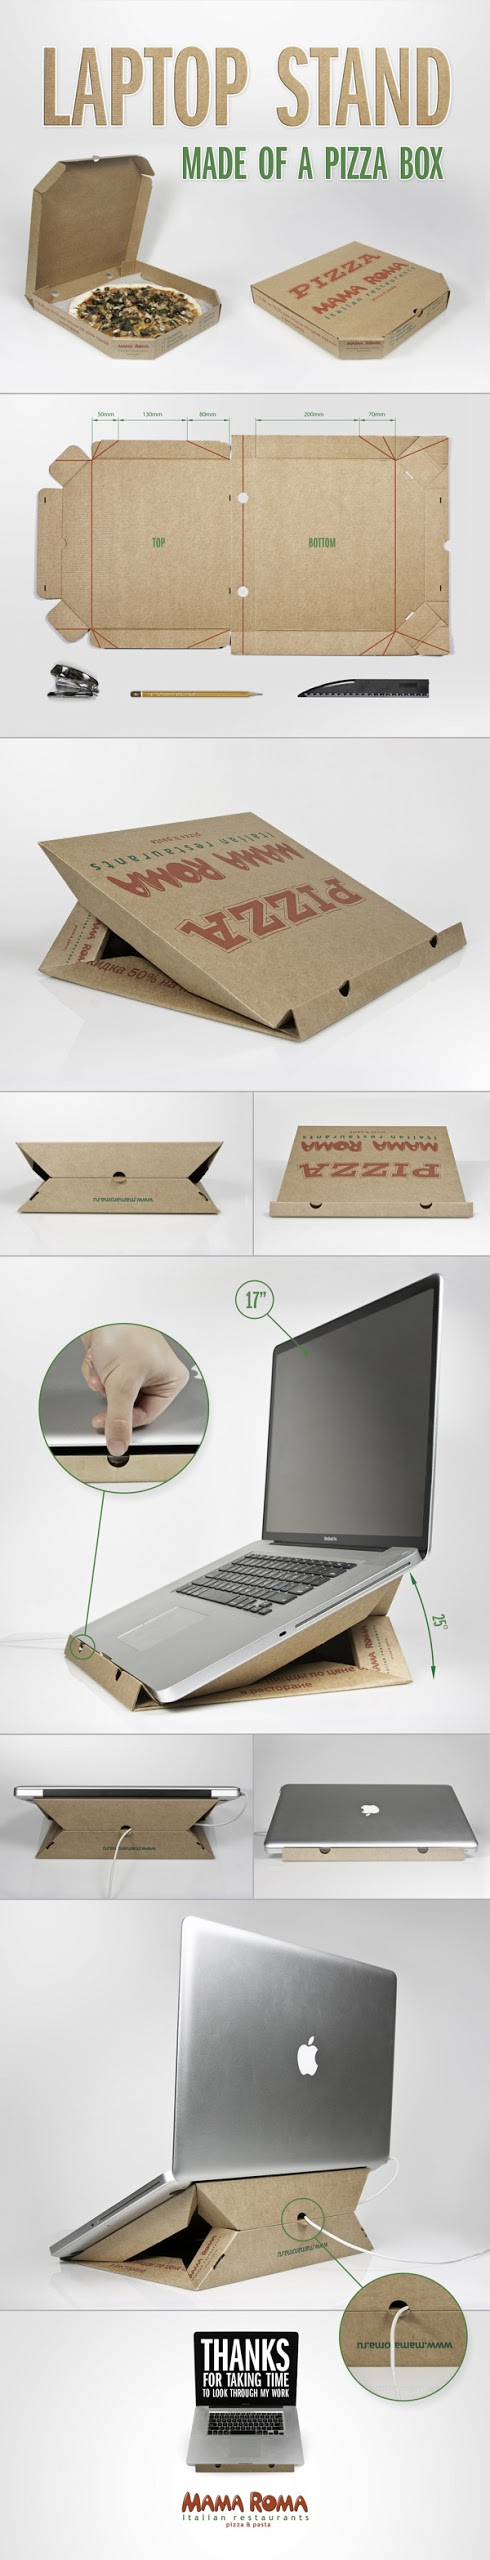 Recycling : Laptop stand made of a pizza box